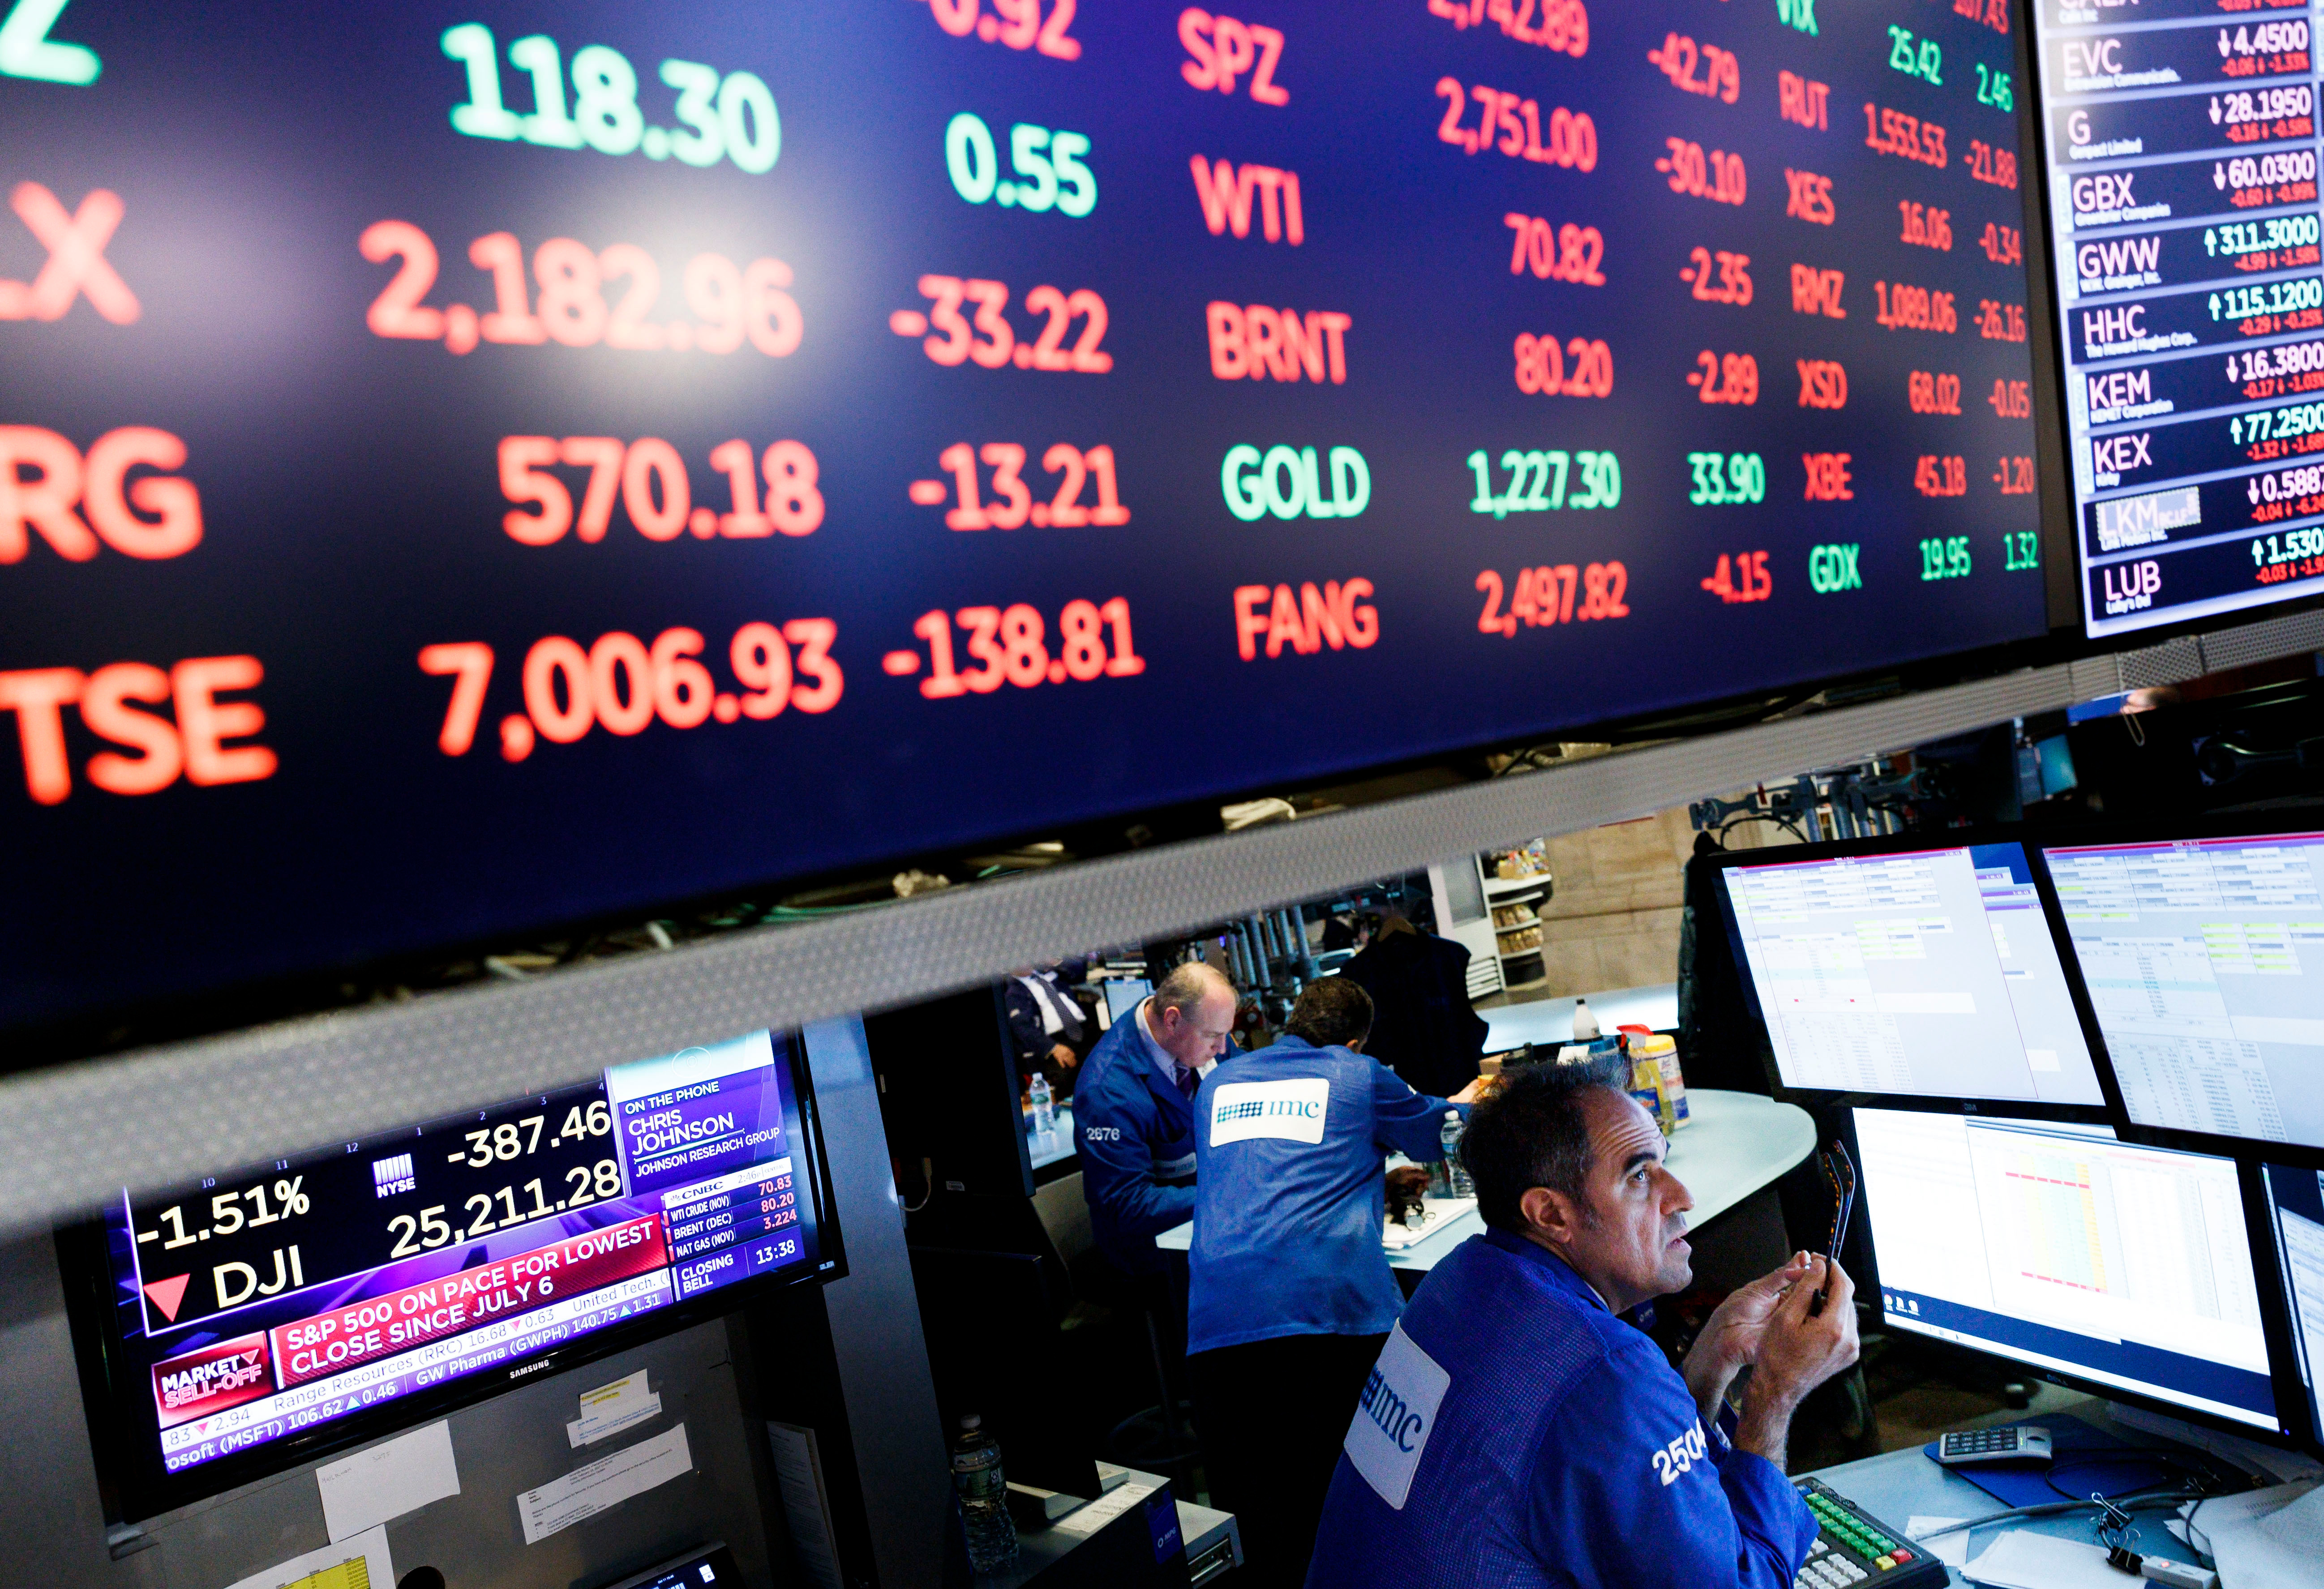 Traders work on the floor of the New York Stock Exchange in New York, New York, USA, on 11 October 2018. The Dow Jones industrial average lost nearly 550 points today.New York Stock Exchange, USA - 11 Oct 2018